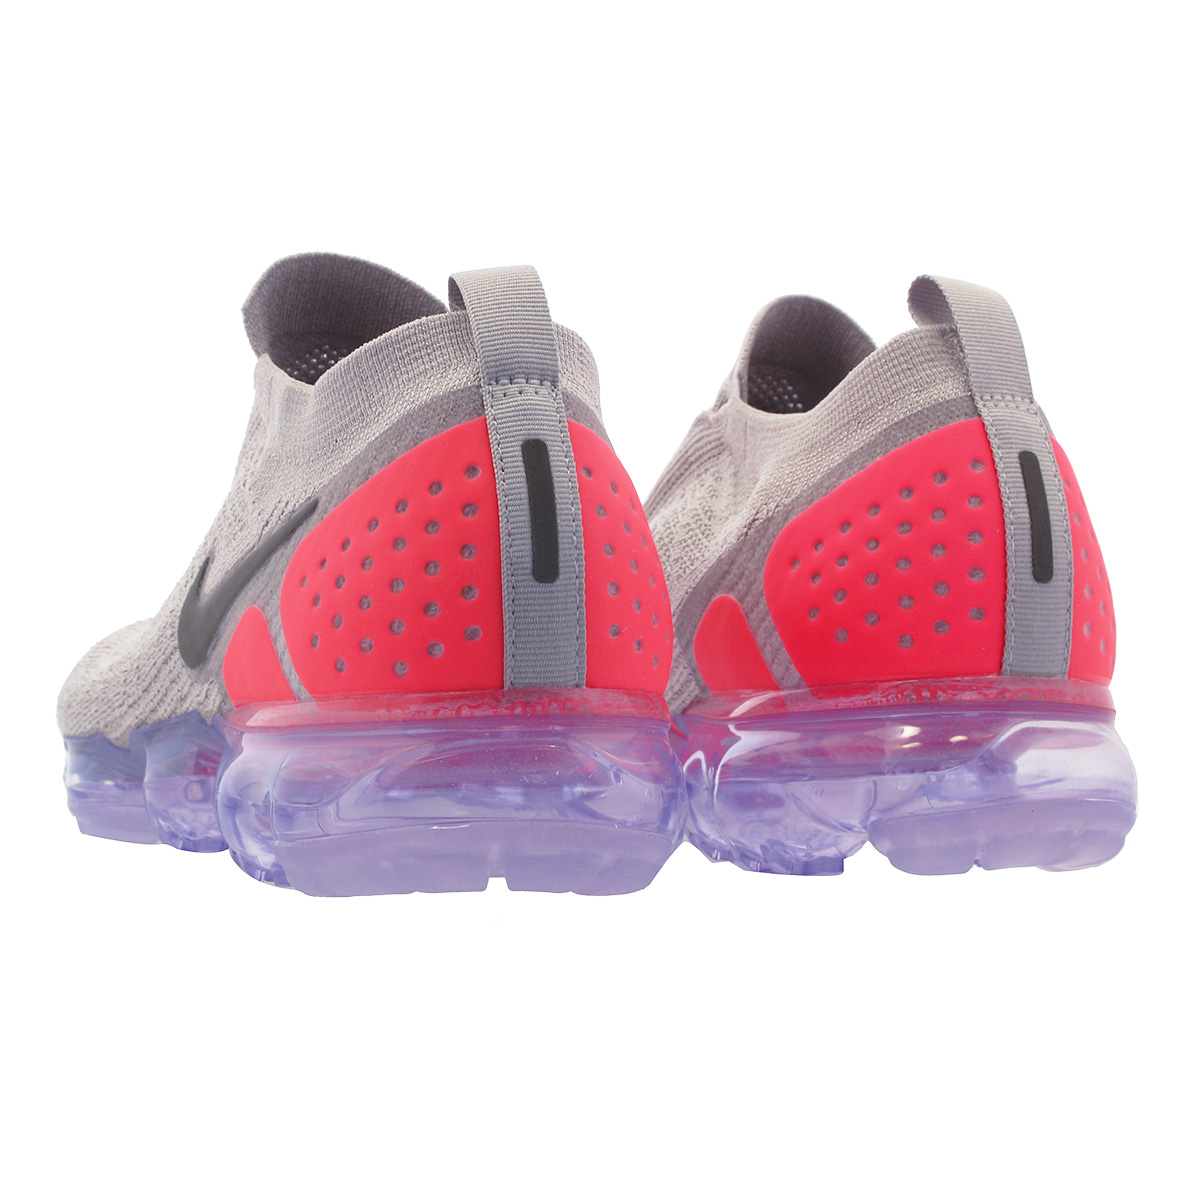 44c47093871f NIKE AIR VAPORMAX MOC 2 Nike air vapor max fried food knit mock 2 MOON  PARTICLE INDIGO BURST ah7006-201